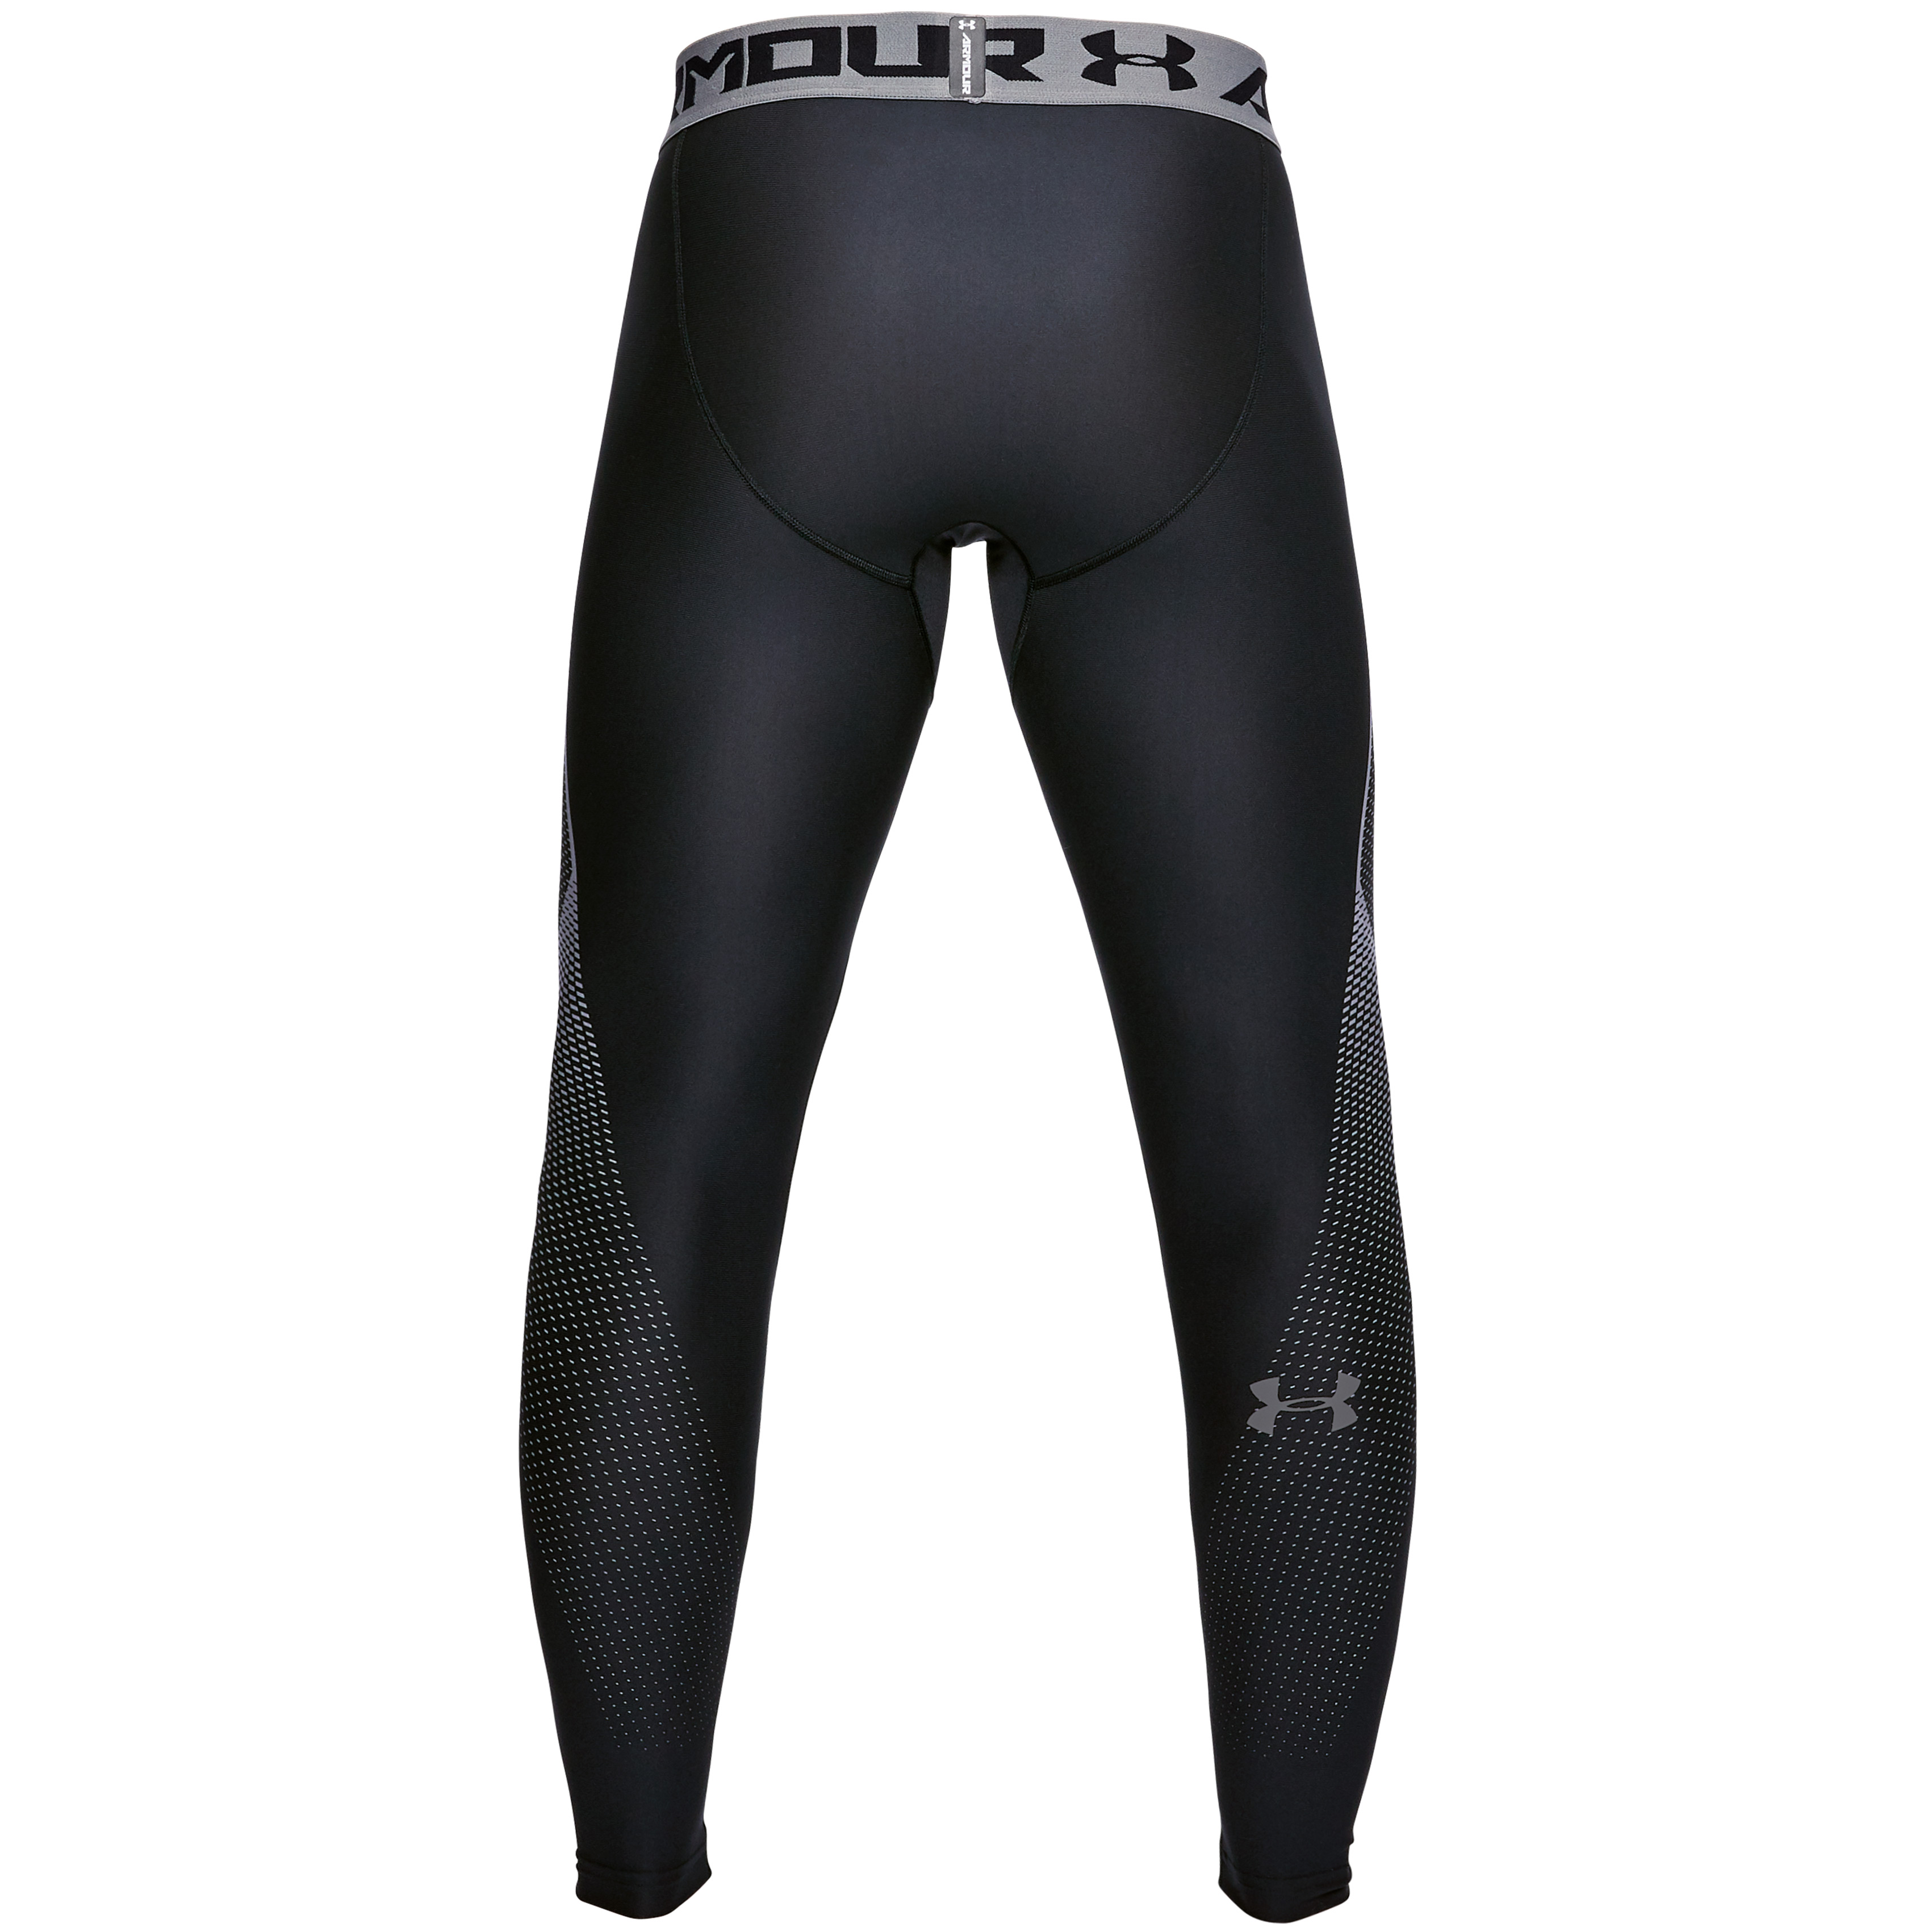 Under Armour Mens HG Armour Graphic Stretch Workout Leggings 45/% OFF RRP